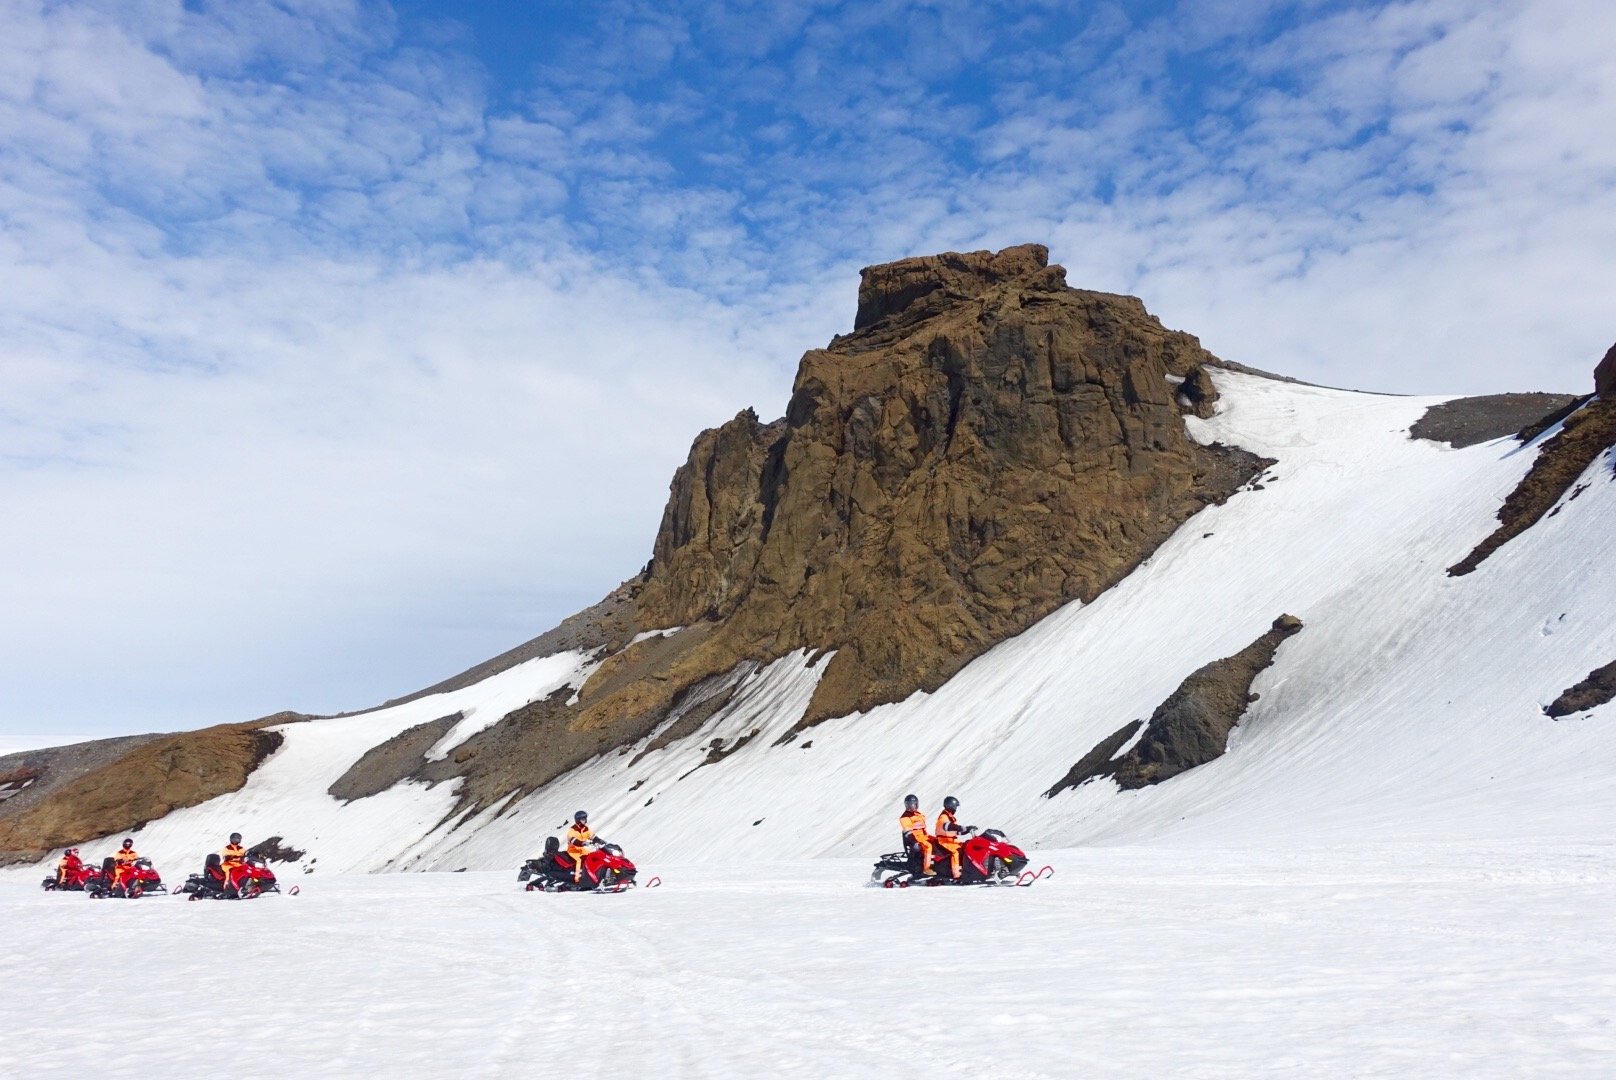 4 Day Northern Lights Winter Adventure in Iceland with the Golden Circle & Blue Lagoon - day 2